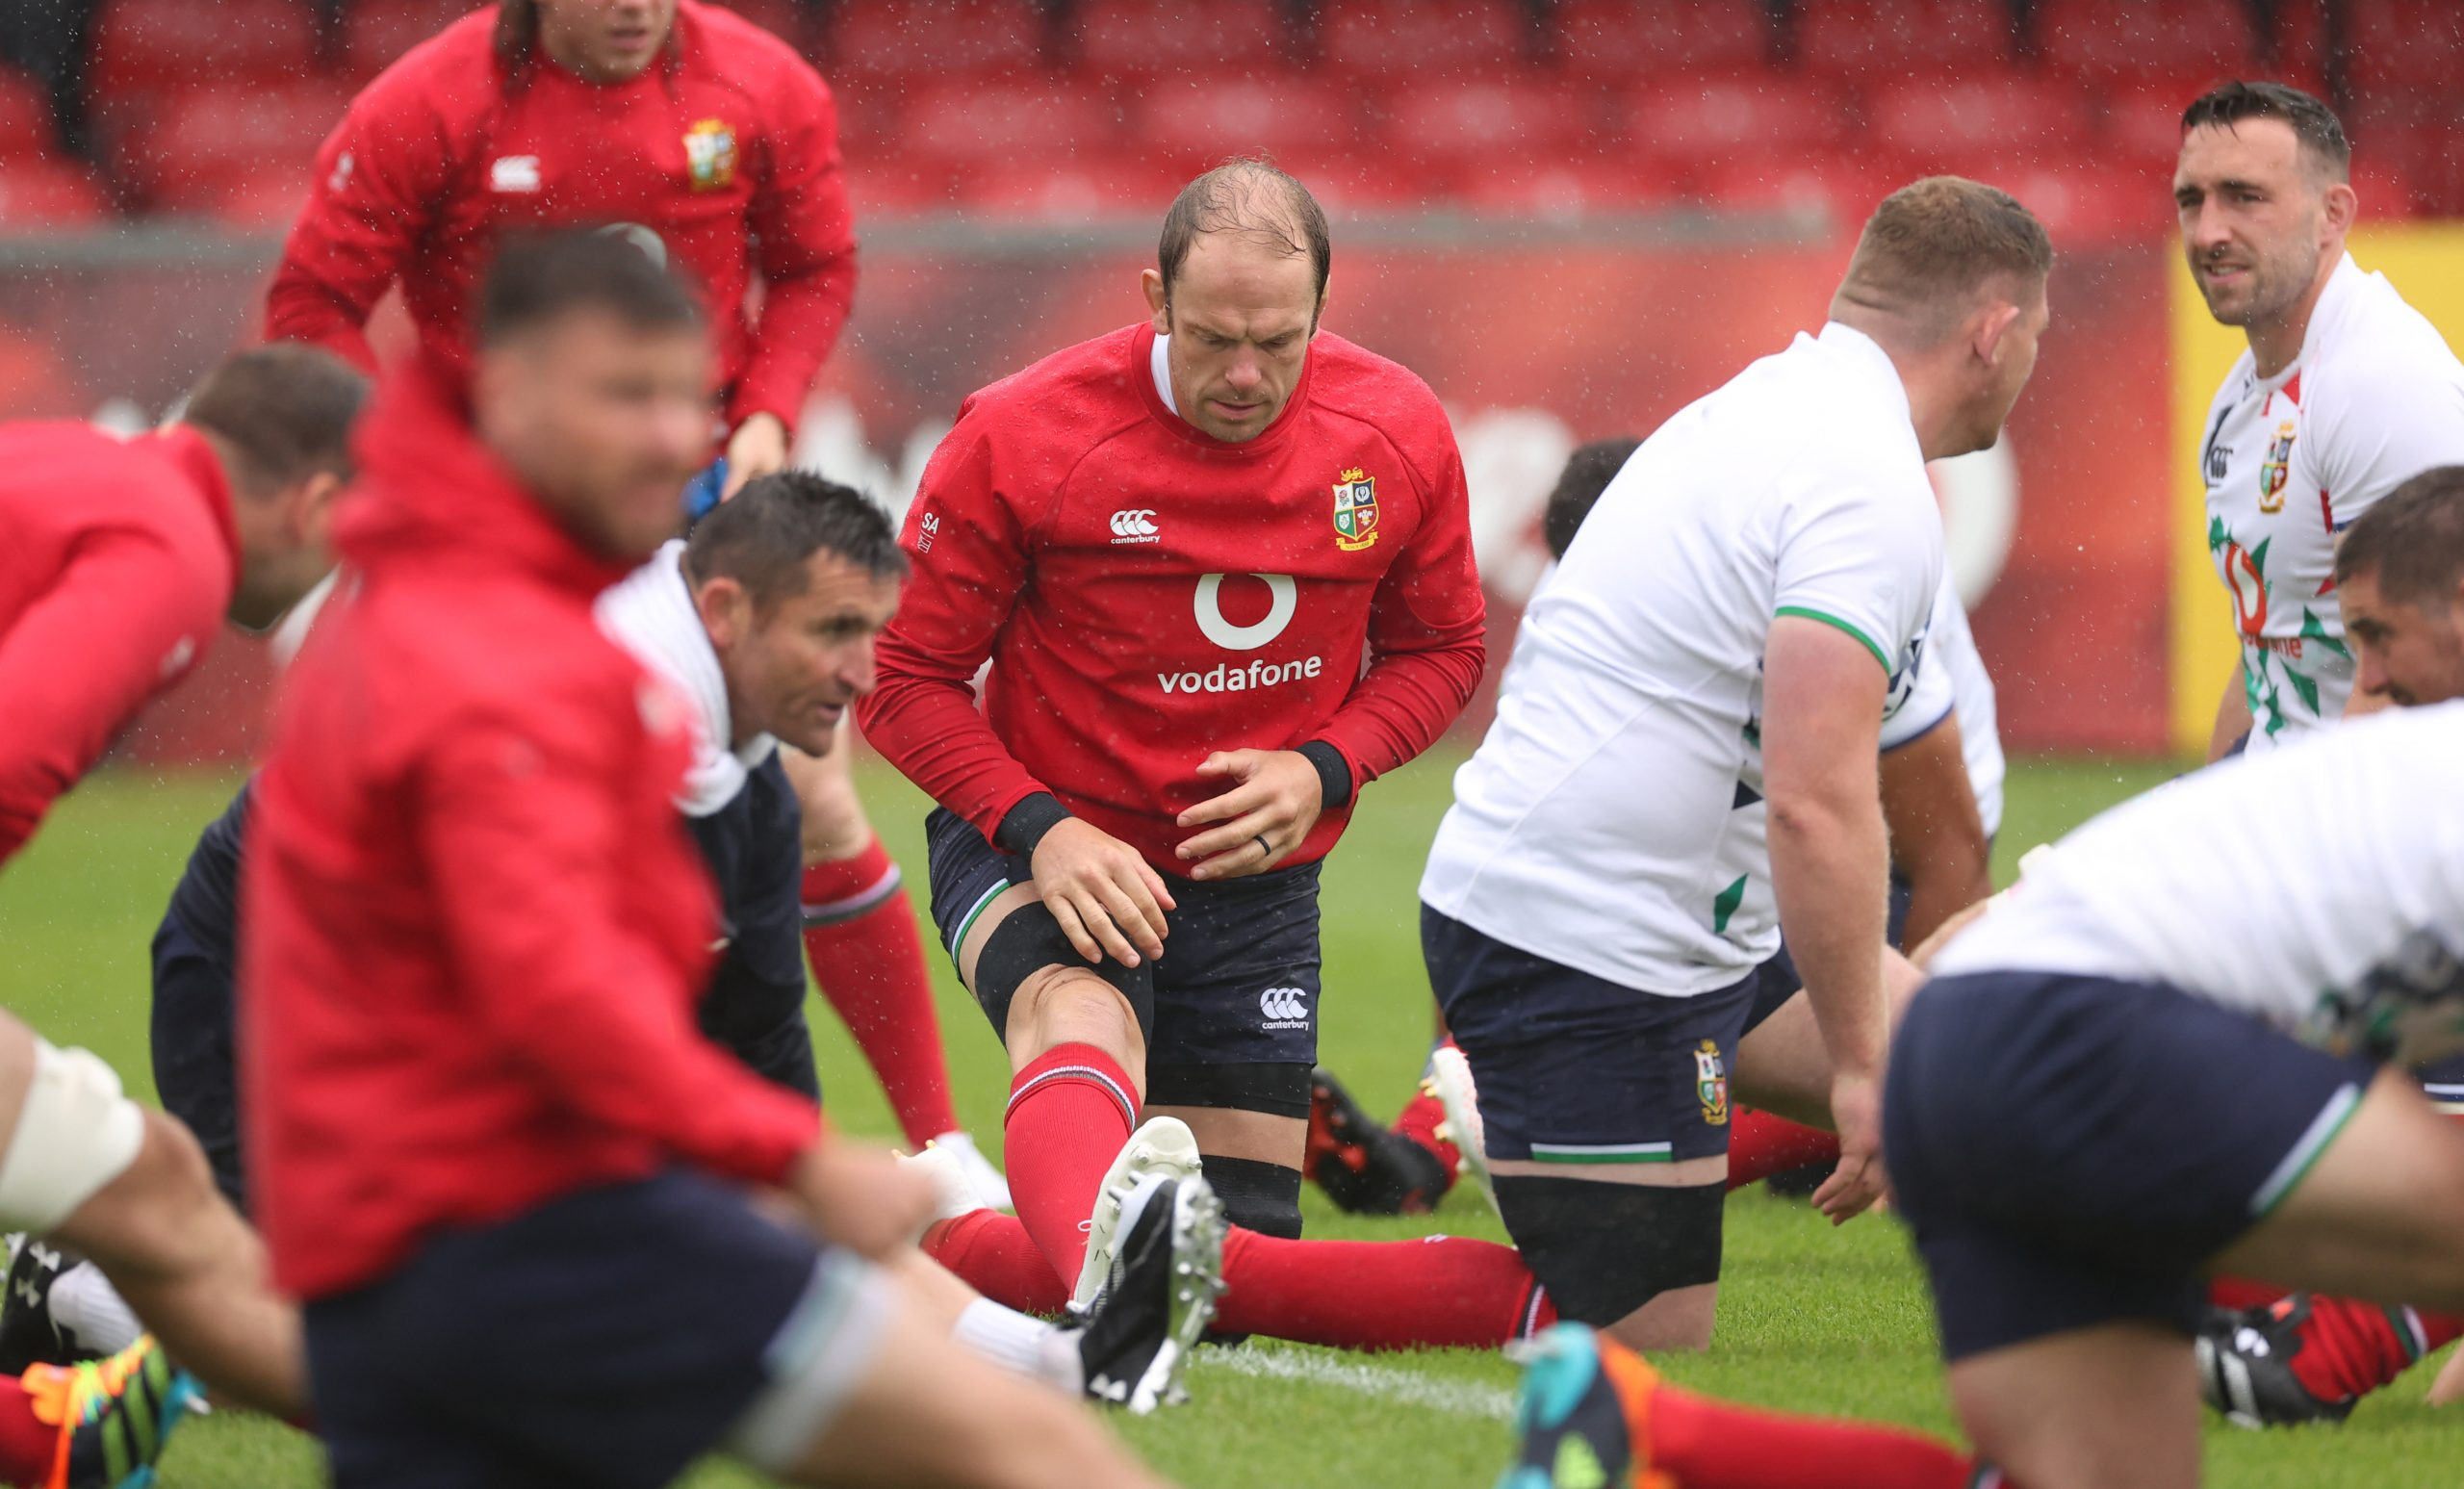 British & Irish Lions' players warming up before a training session